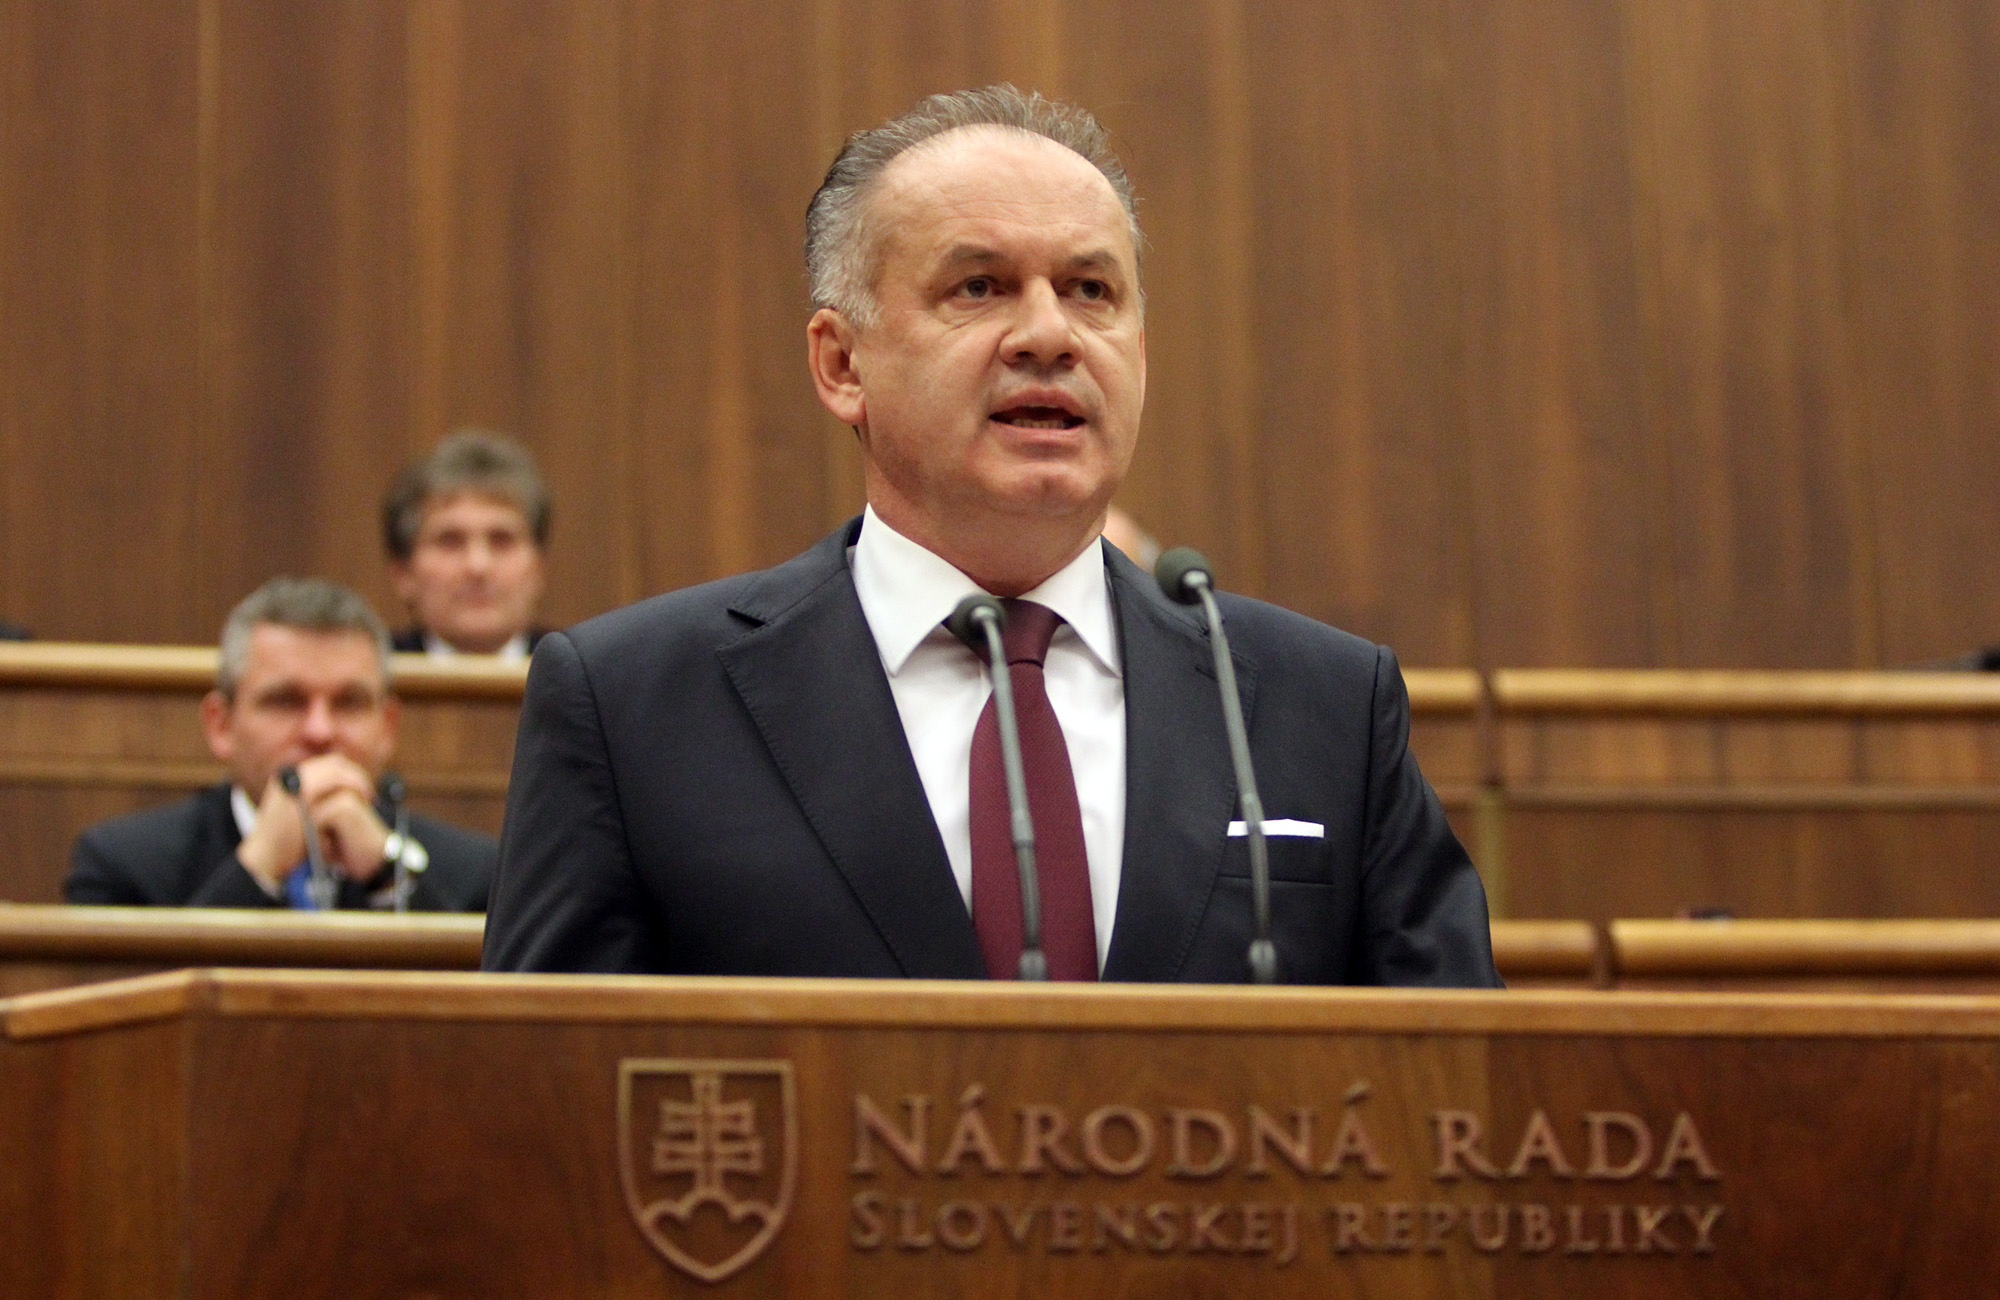 President Kiska: We should be in a different position in the EU